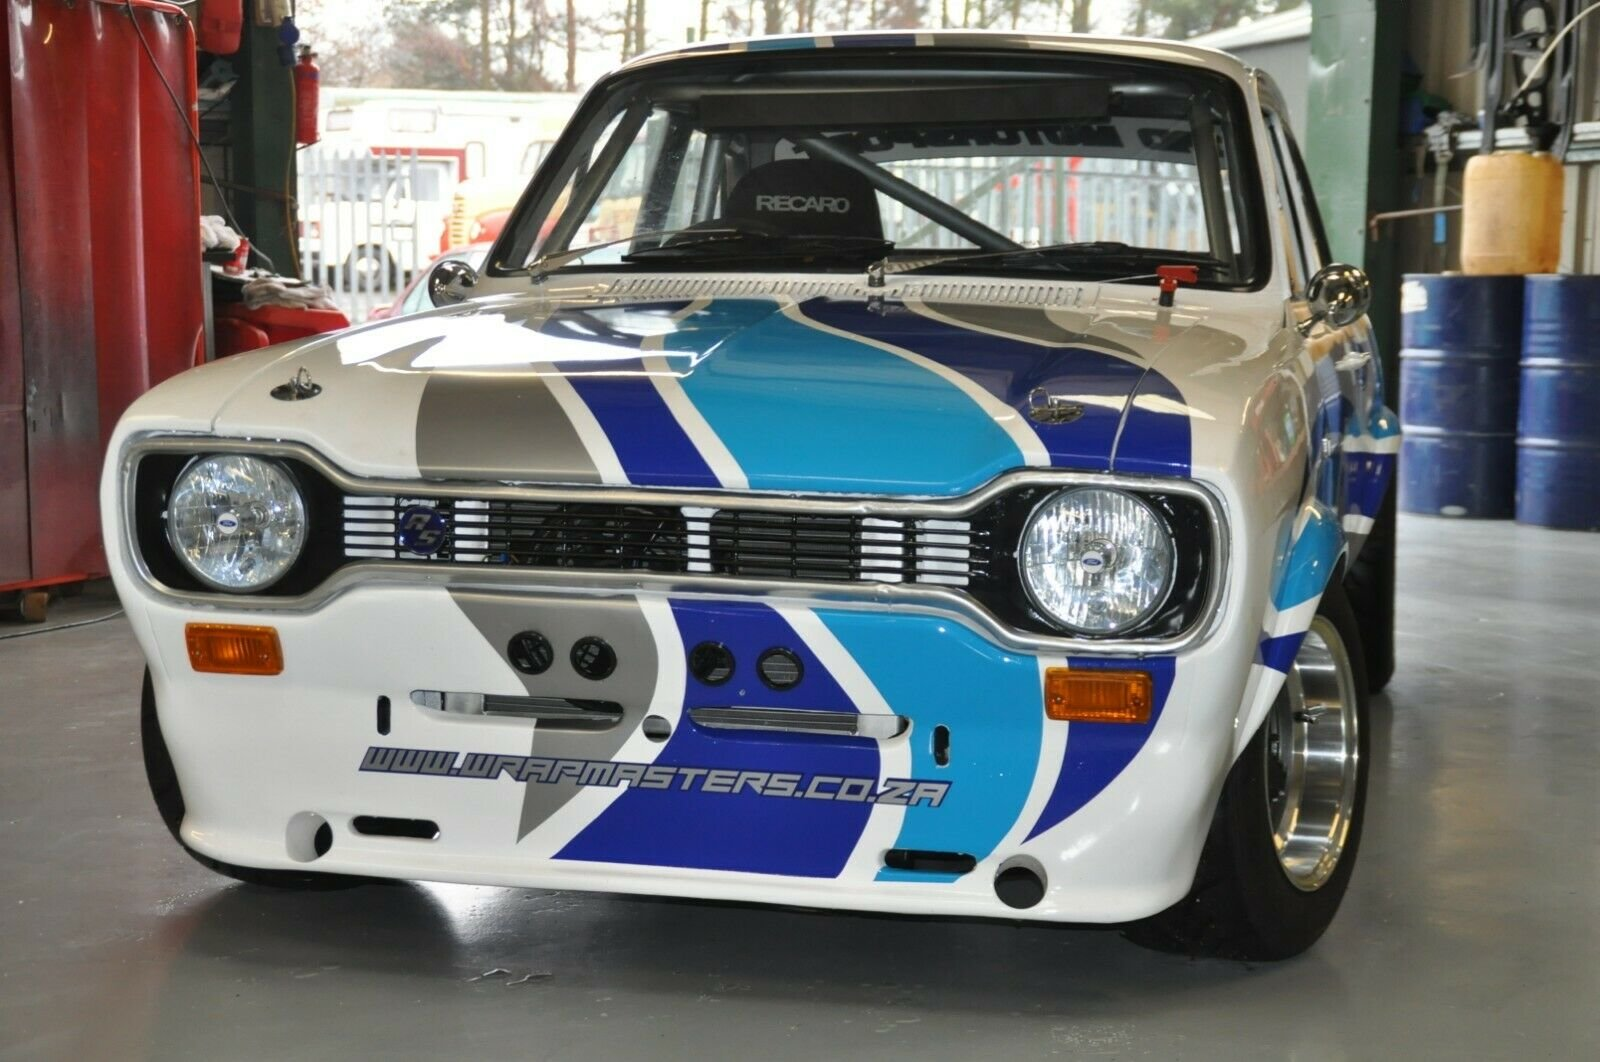 MK1 FORD ESCORT RACE CAR 2.0 PINTO 5 SPEED TYPE 9 GEARBOX MO For Sale (picture 6 of 6)